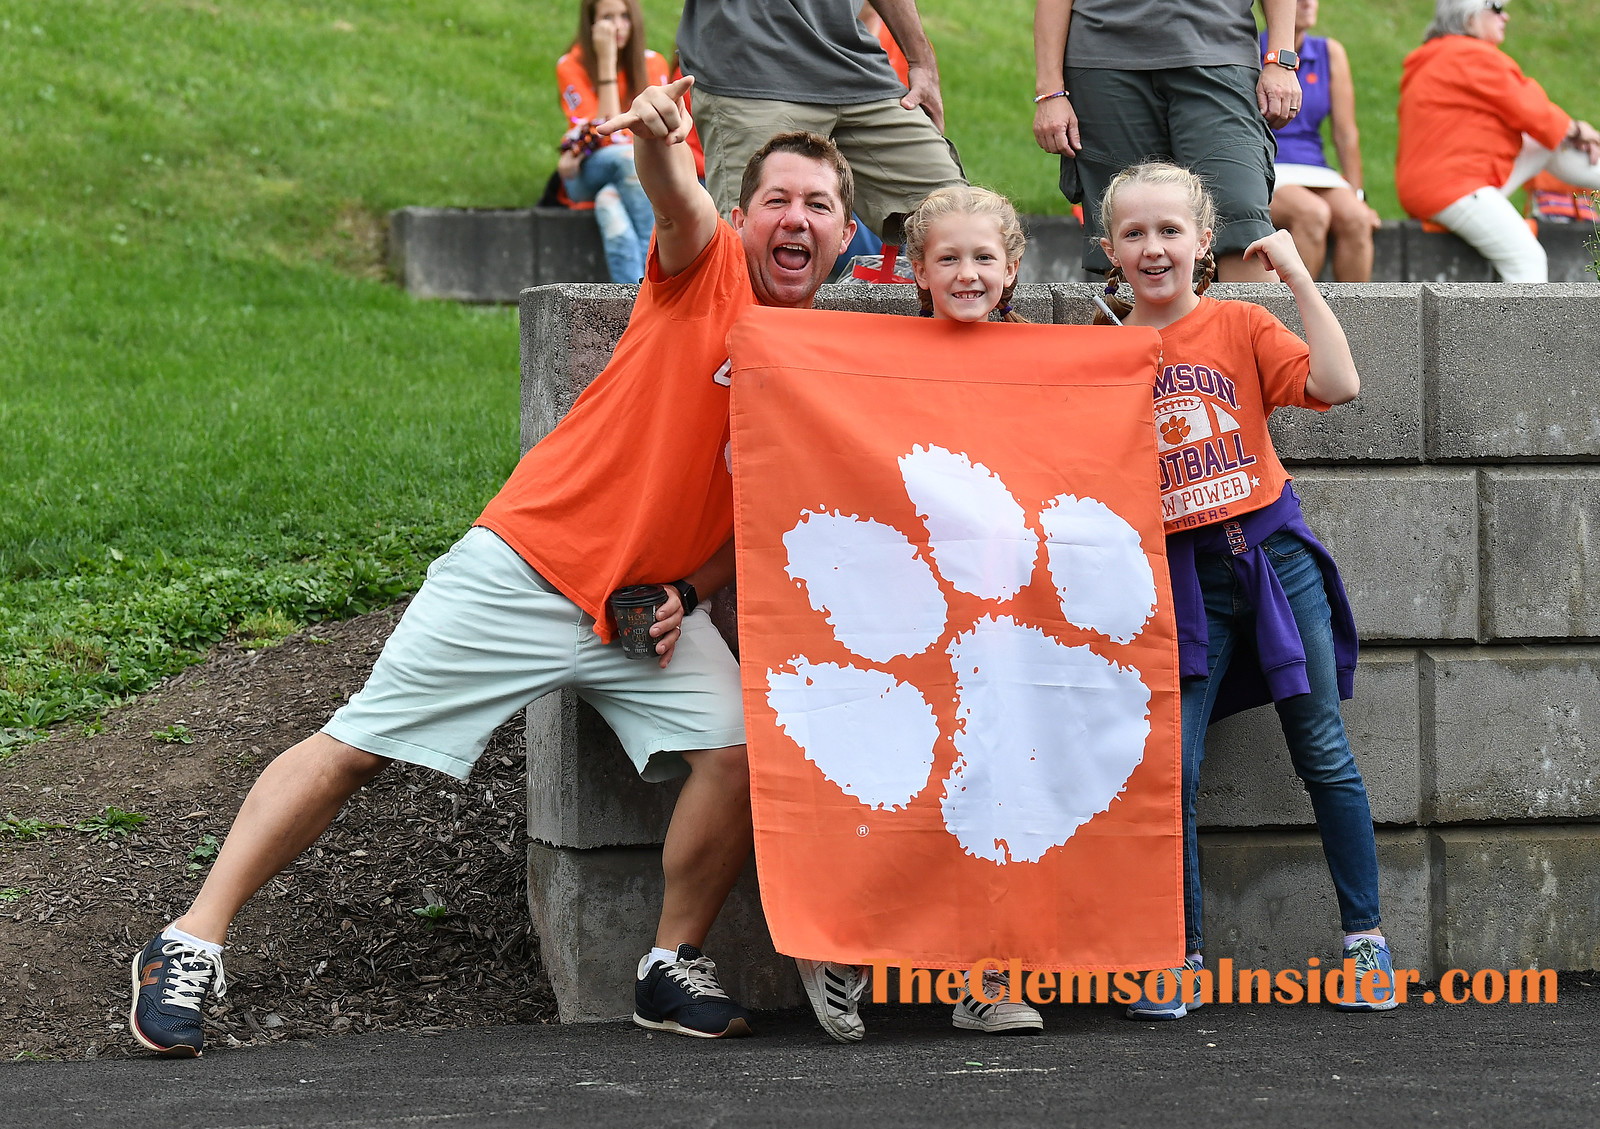 Clemson fans meet the Tigers as they arrive at the Dome in Syracuse, N.Y. to play the Syracuse Orange Saturday, September 14, 2019. Bart Boatwright/The Clemson Insider